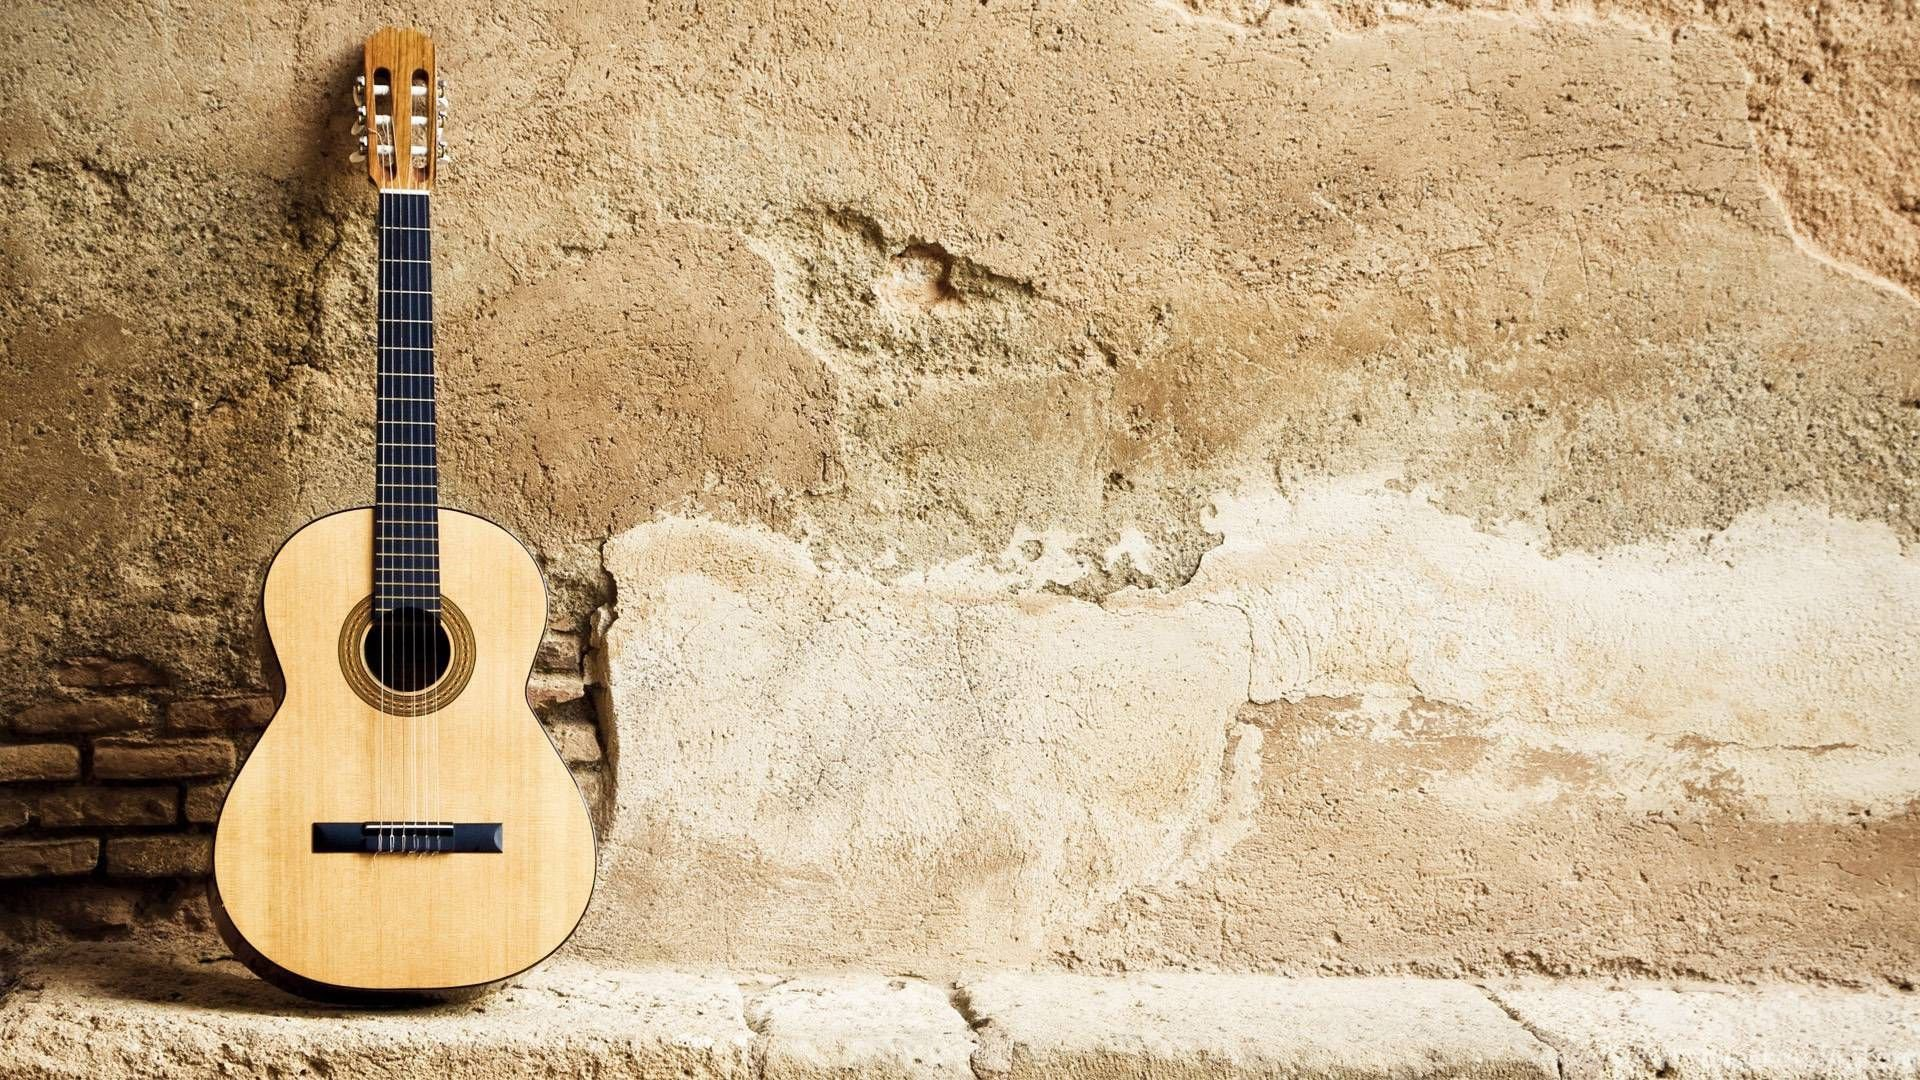 Guitar Wallpaper Acoustic Guitar Wallpaper High Resolution 110744 Hd Wallpaper Backgrounds Download